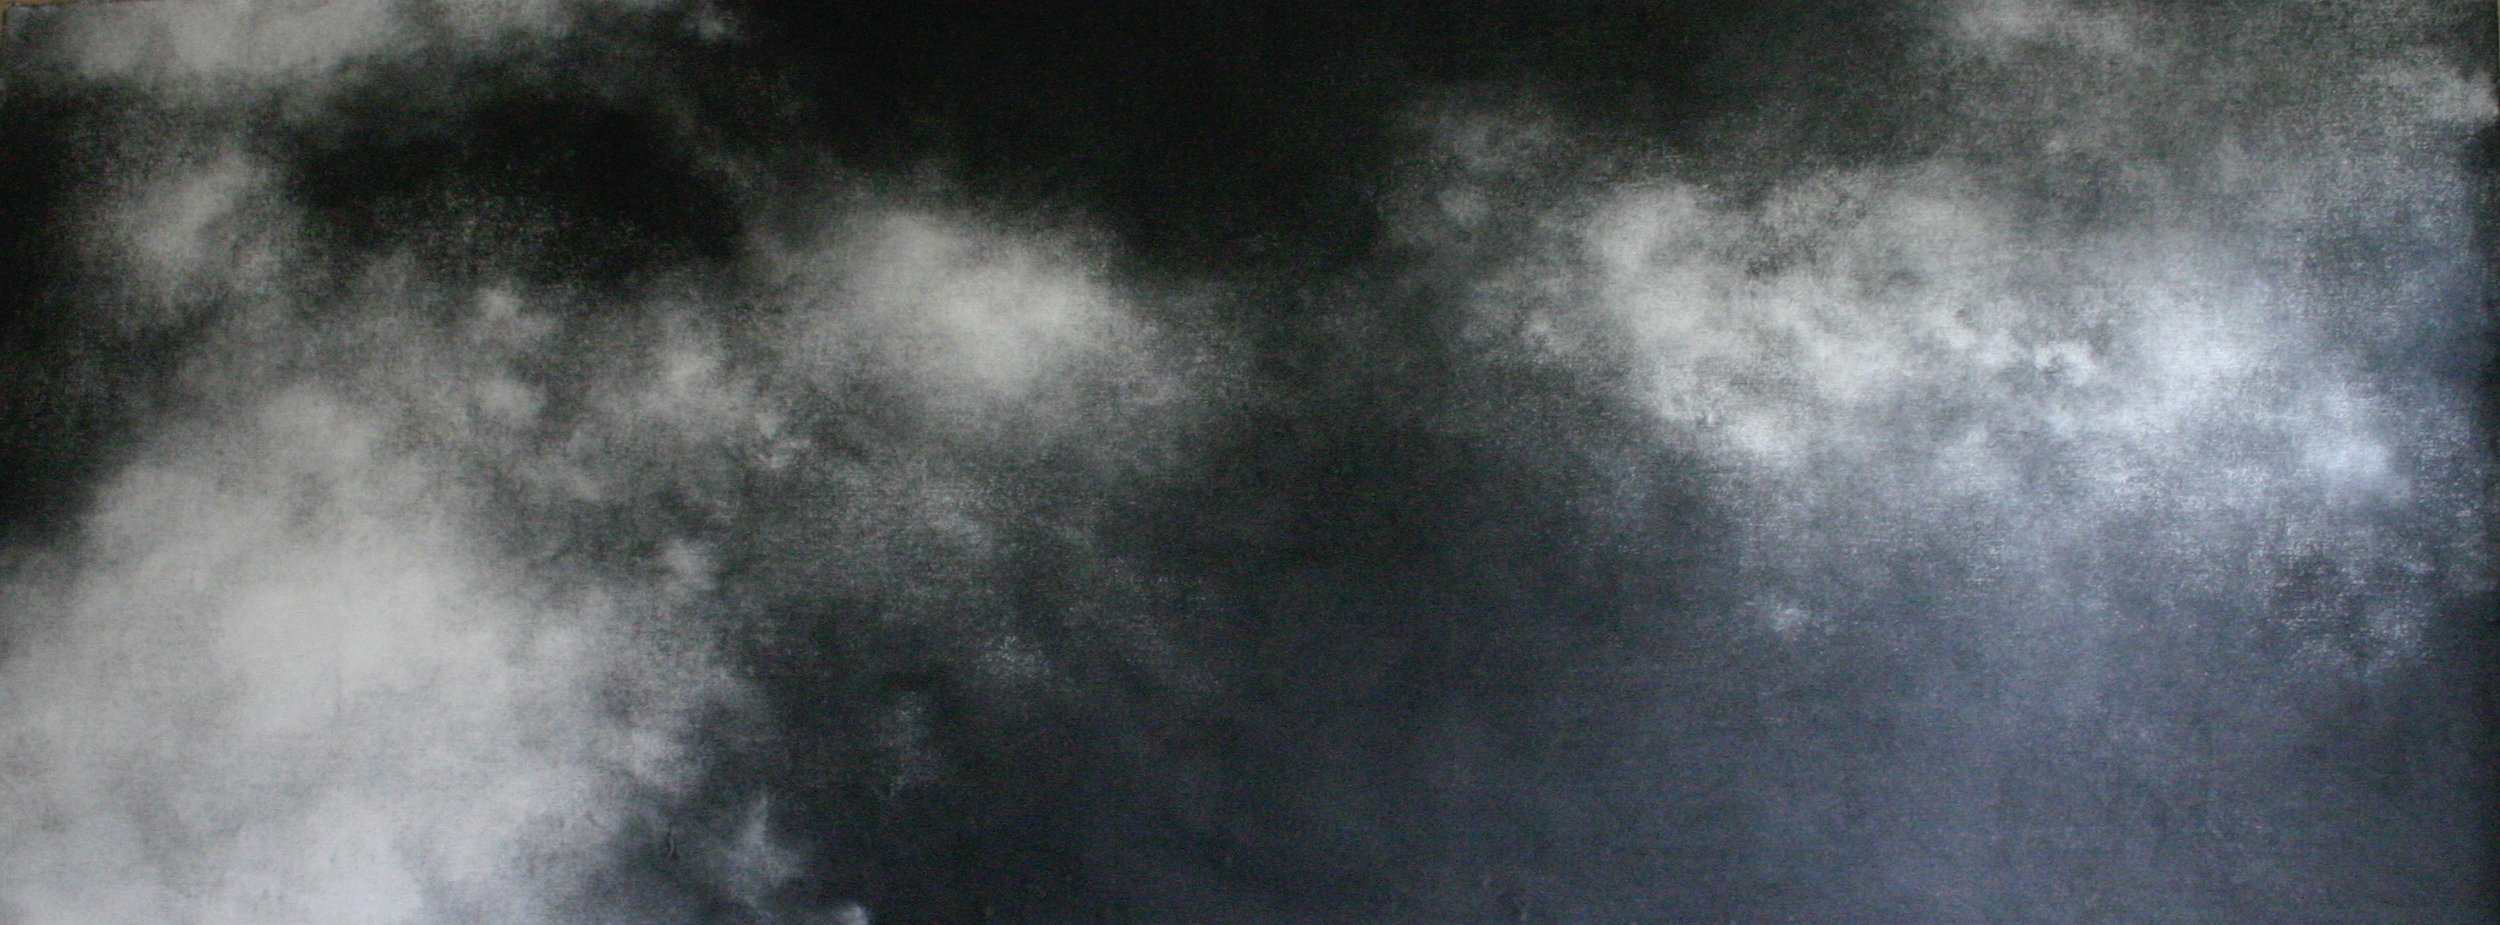 Journey on, 2006 charcoal on paper 100x280cm